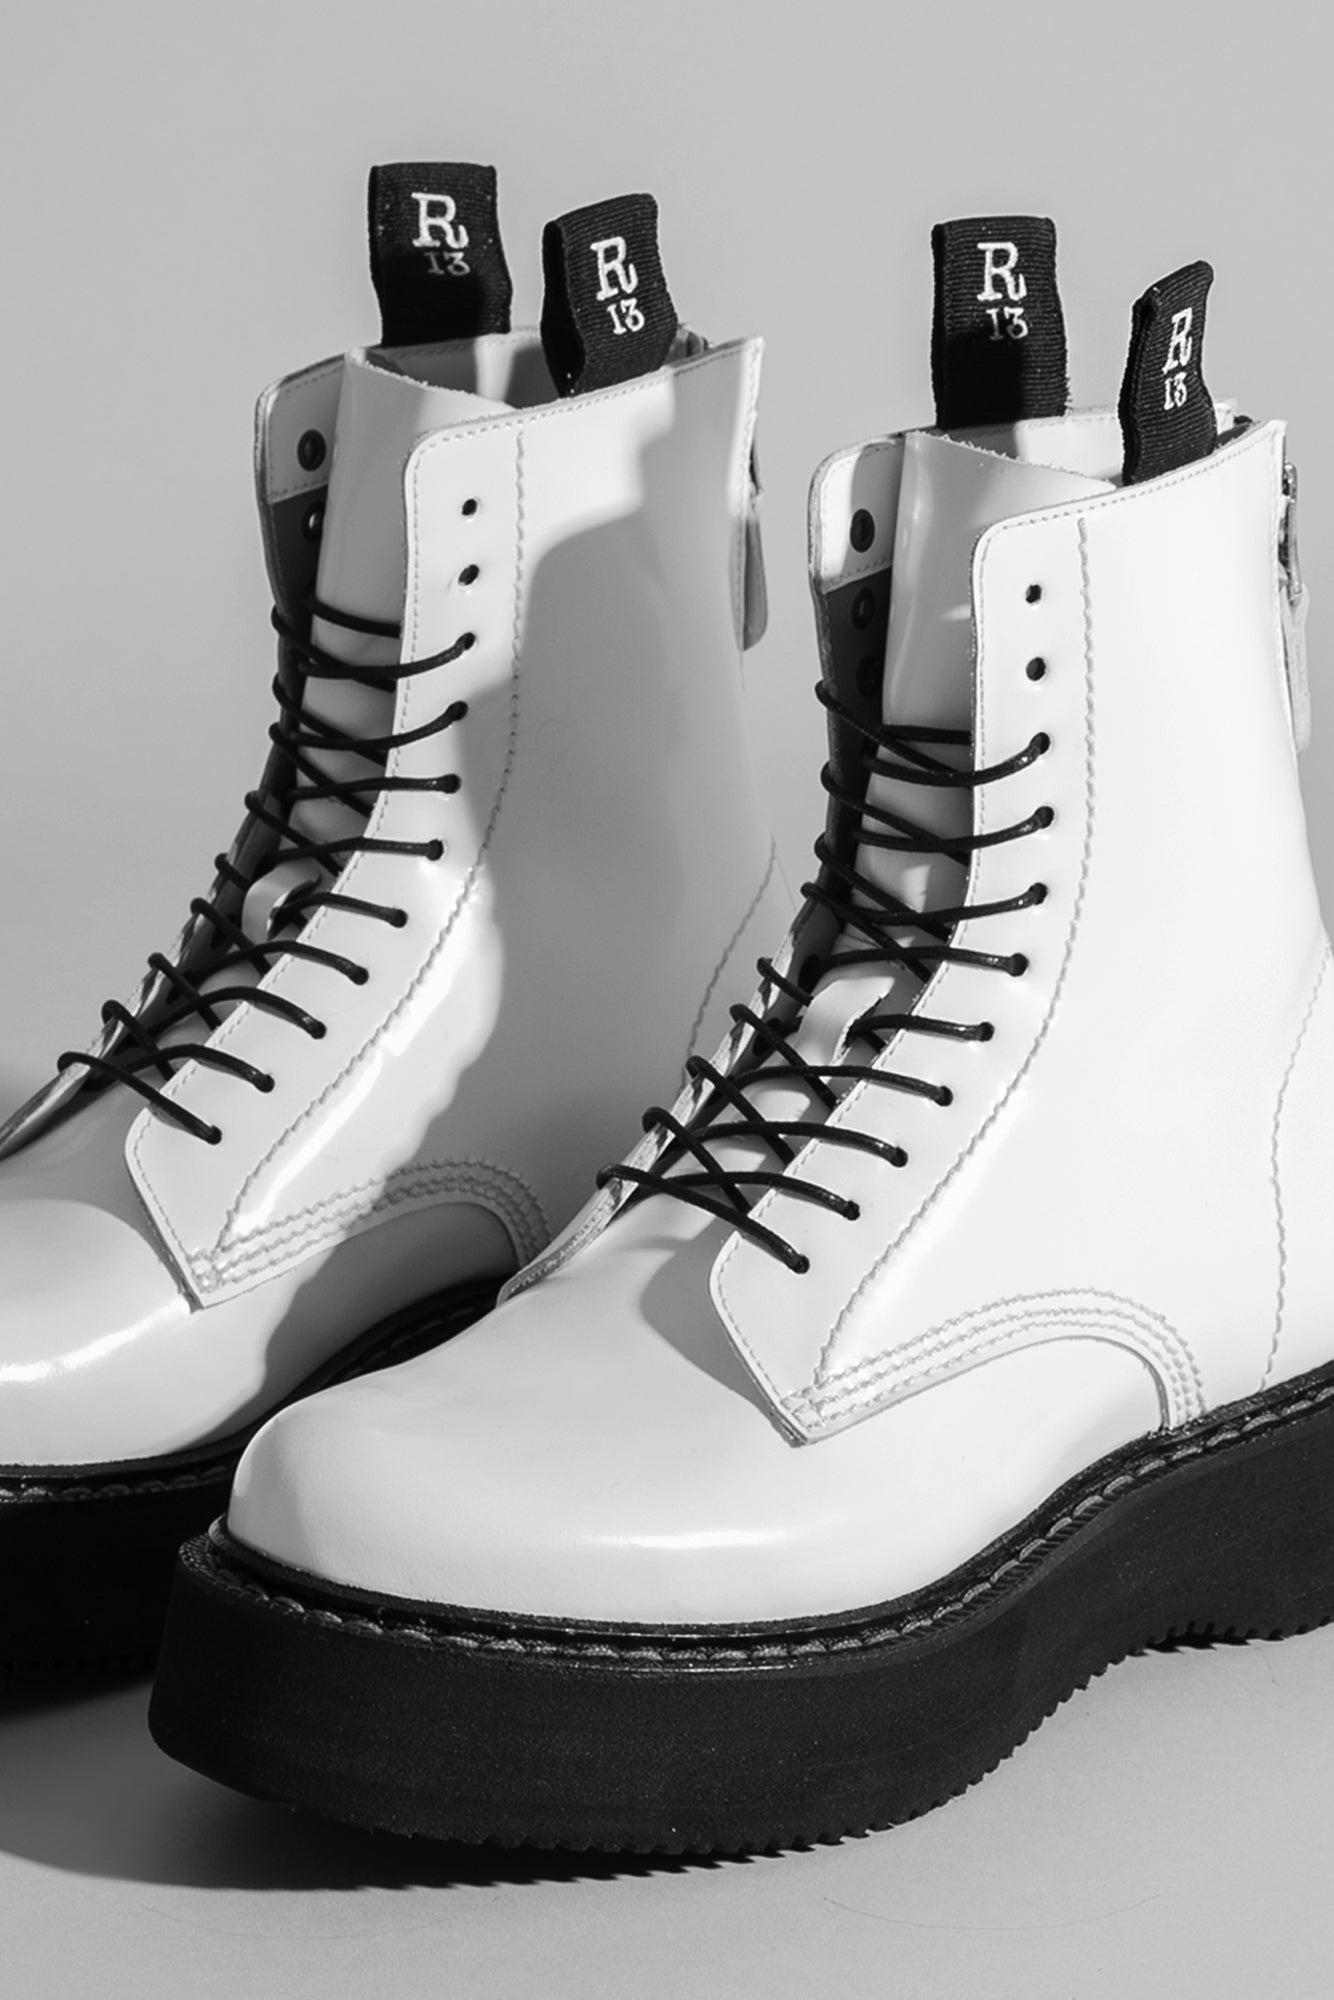 R13 Boot with chunky black sole in glossy white